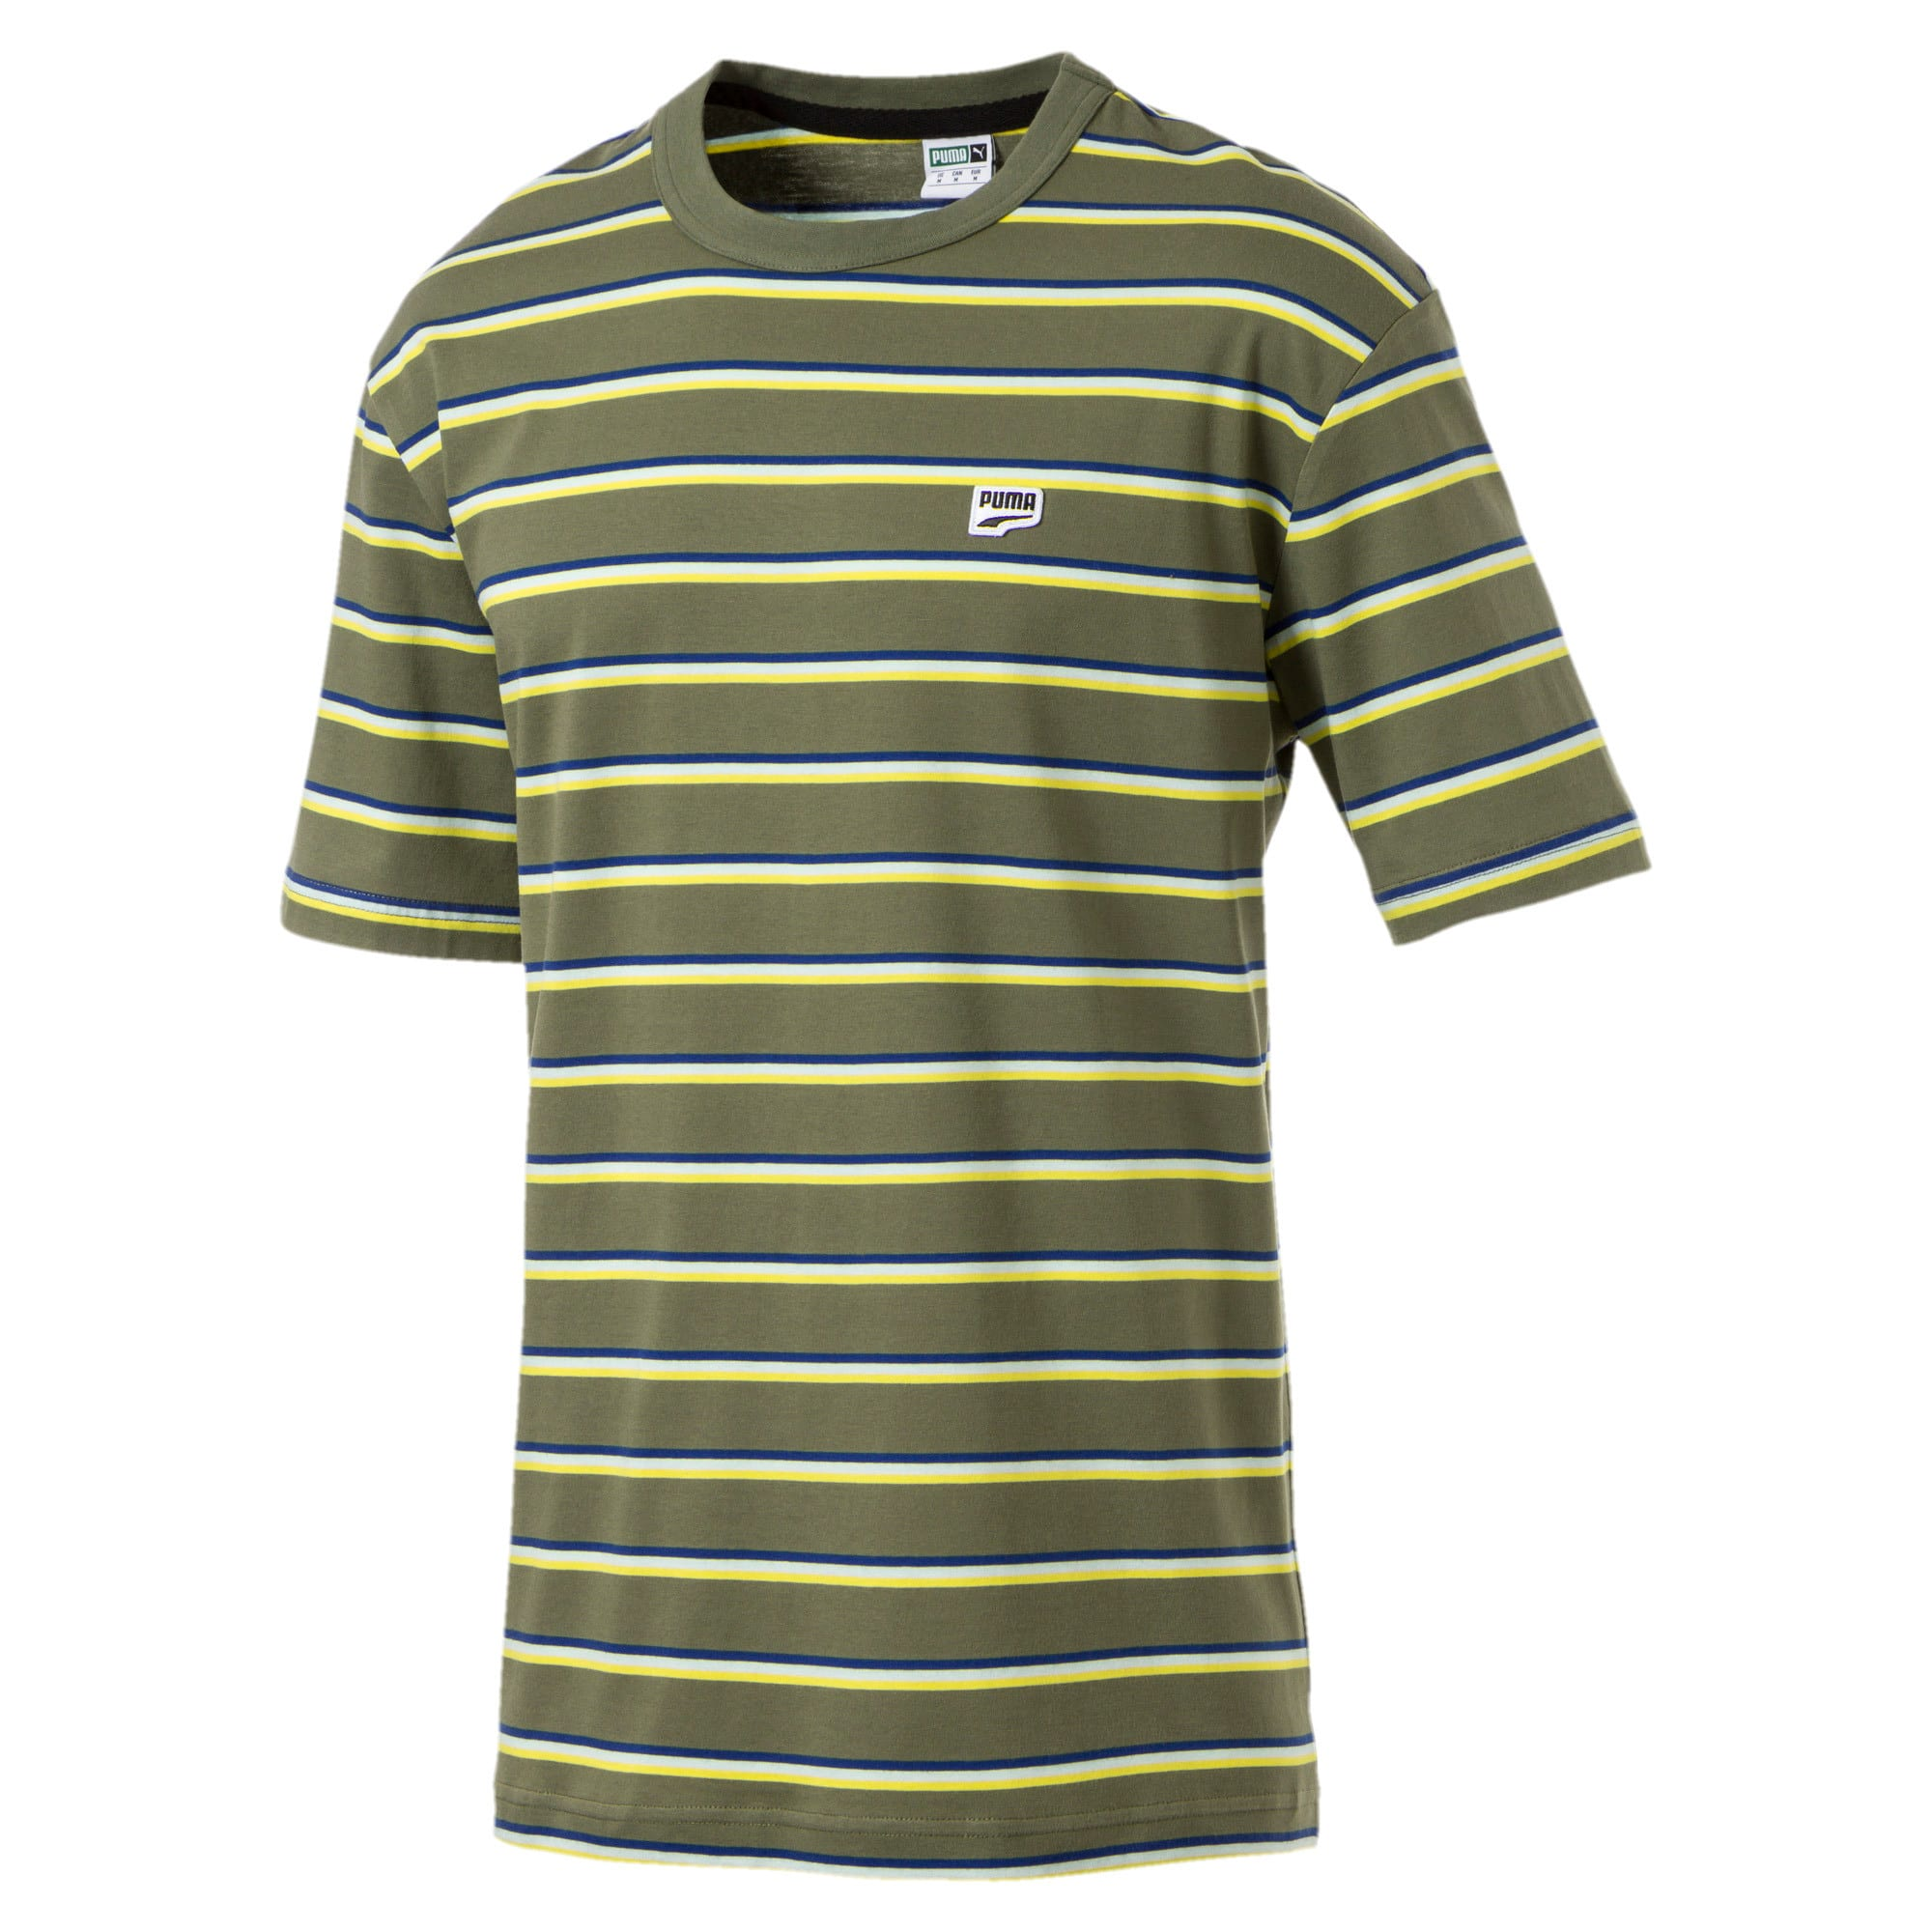 Thumbnail 1 of Downtown Striped Men's Tee, Olivine, medium